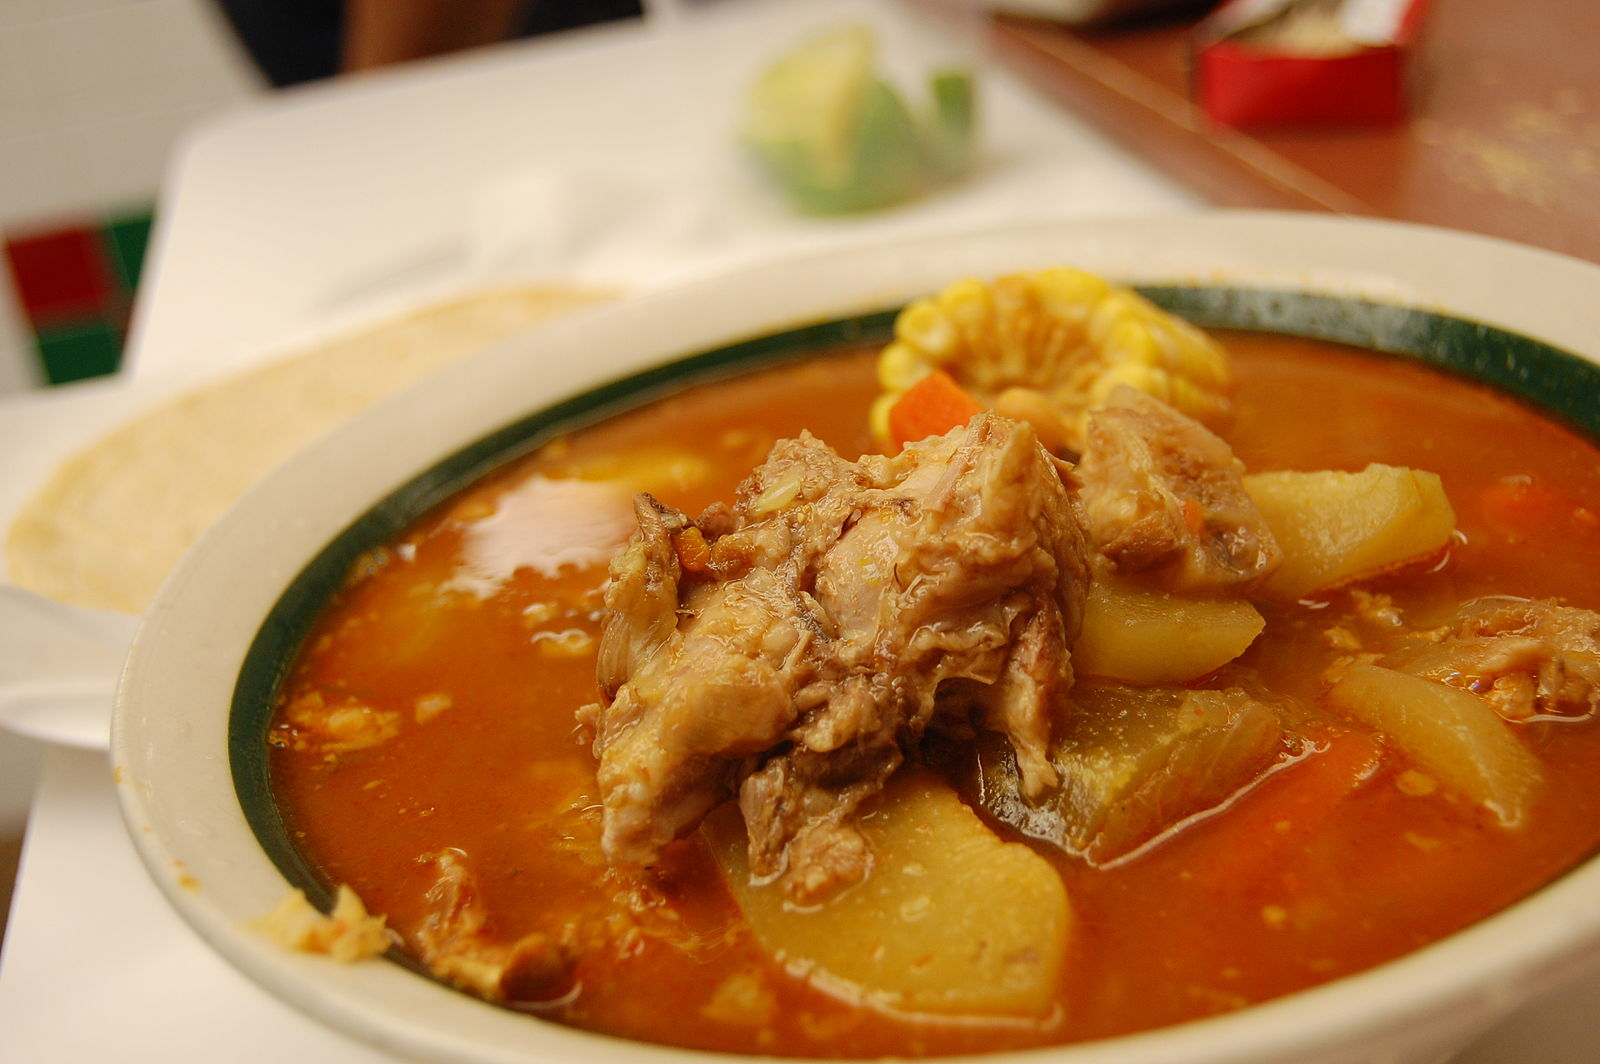 Mole de Olla. (Photo by stu_spivack via Wikimedia Commons)